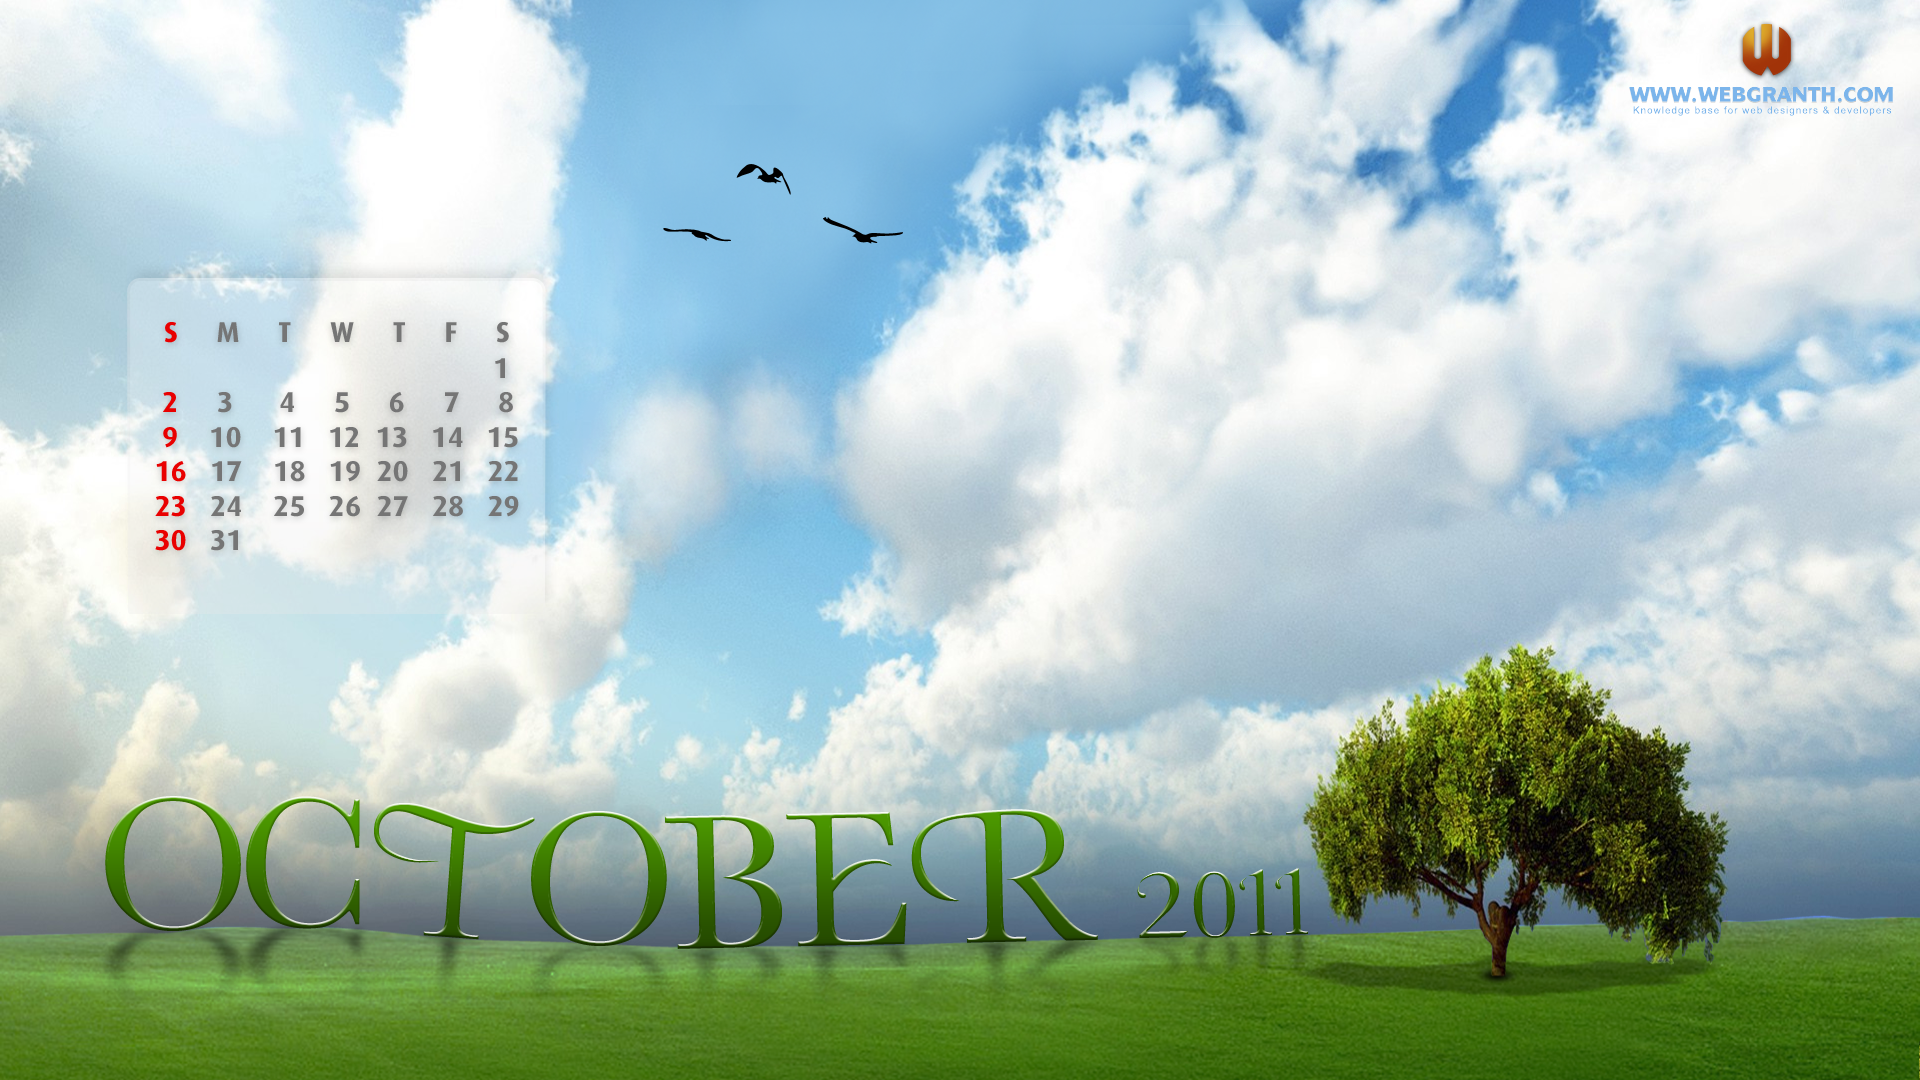 Desktop Calendar Wallpaper October 2011 Download   Webgranth 2015 1920x1080